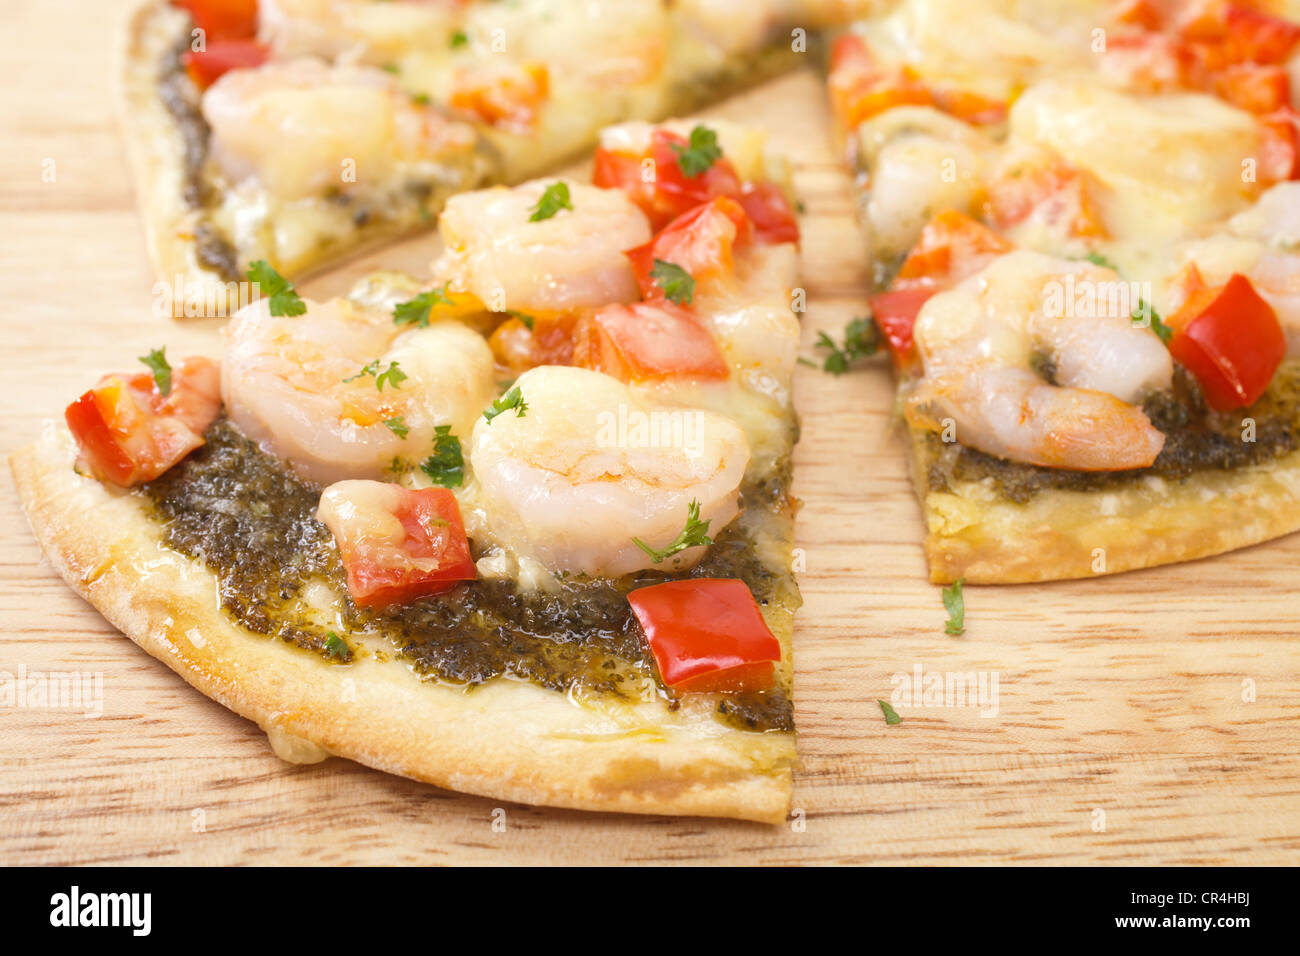 Crispy based pizza topped with prawns, red pepper, mozzarella and basil pesto. - Stock Image